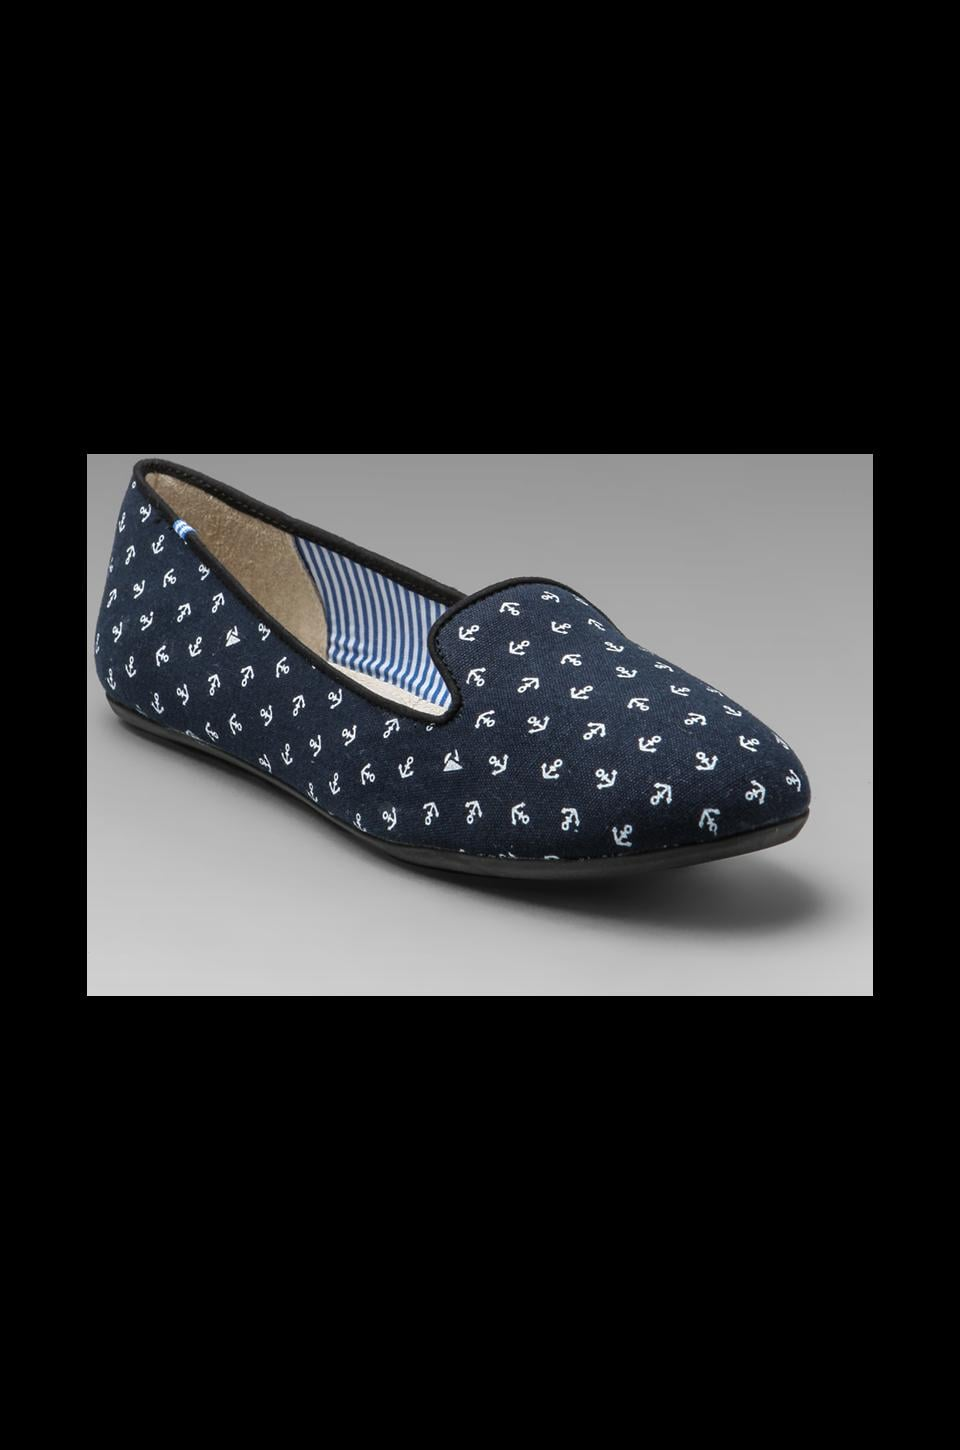 Charles Philip Shanghai Tropez Flat in Navy Anchors